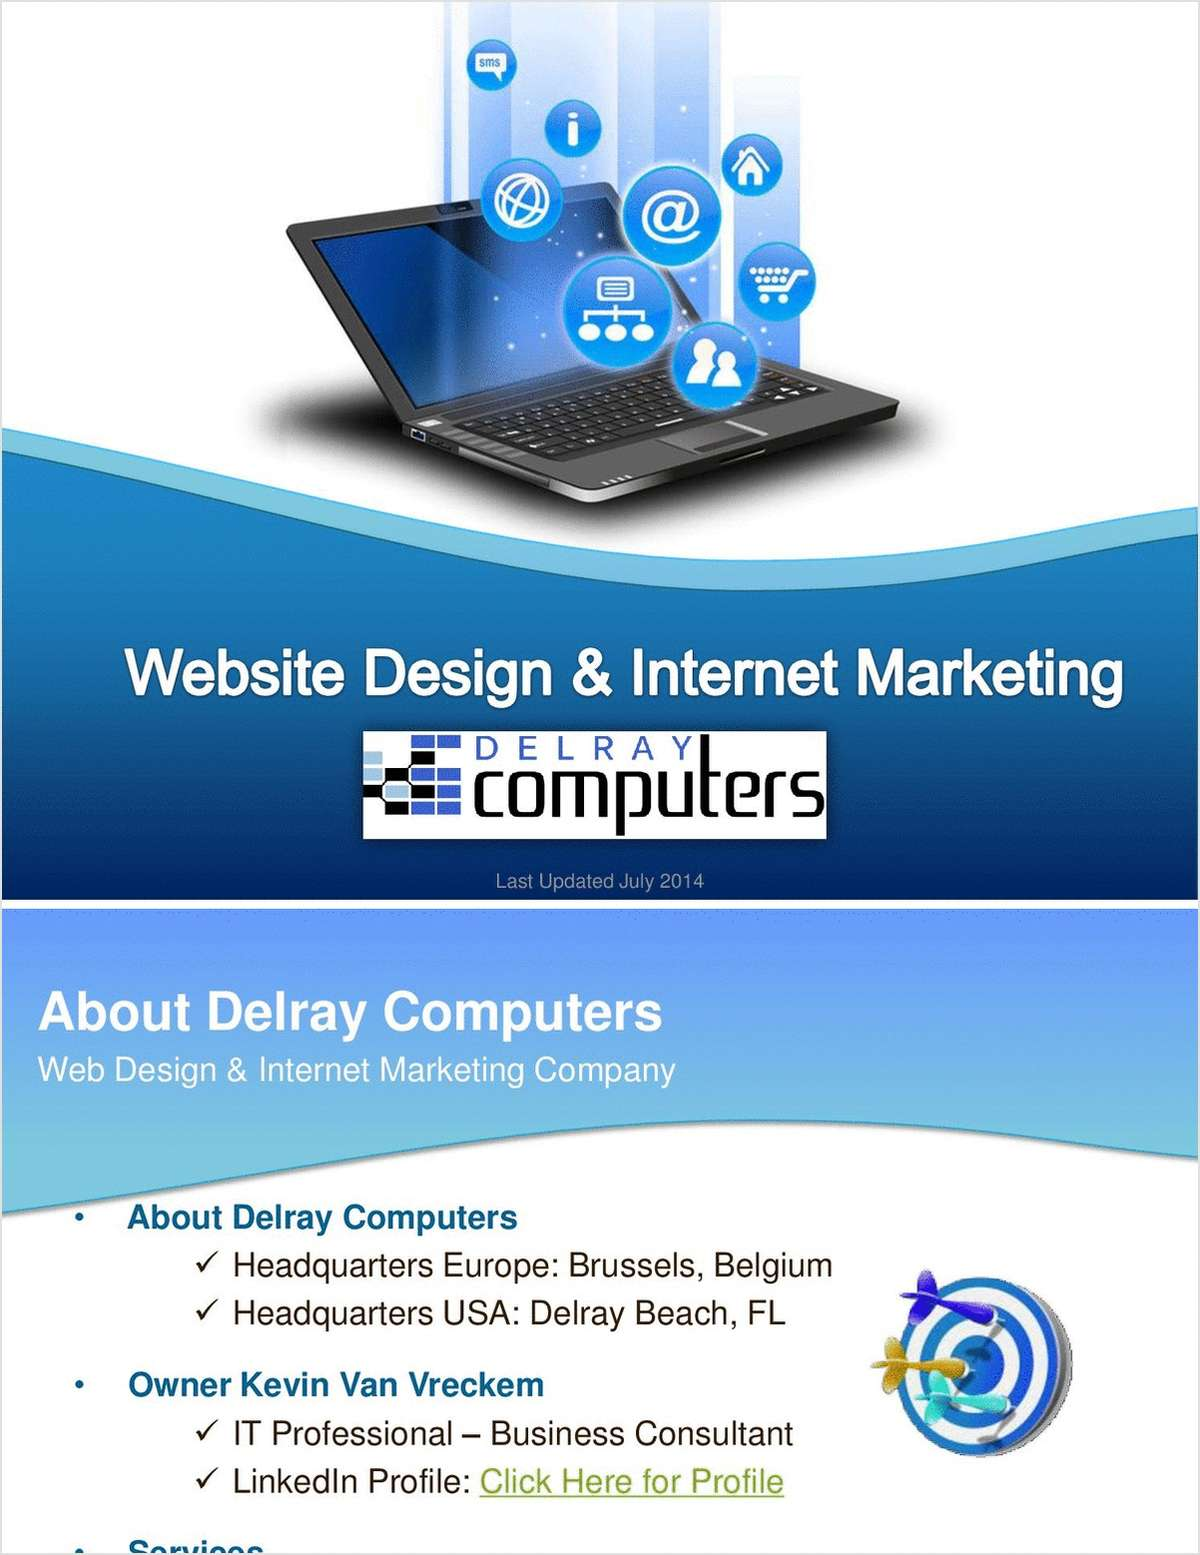 Delray Computers - Internet Marketing and Web Design Company with a European Headquarters